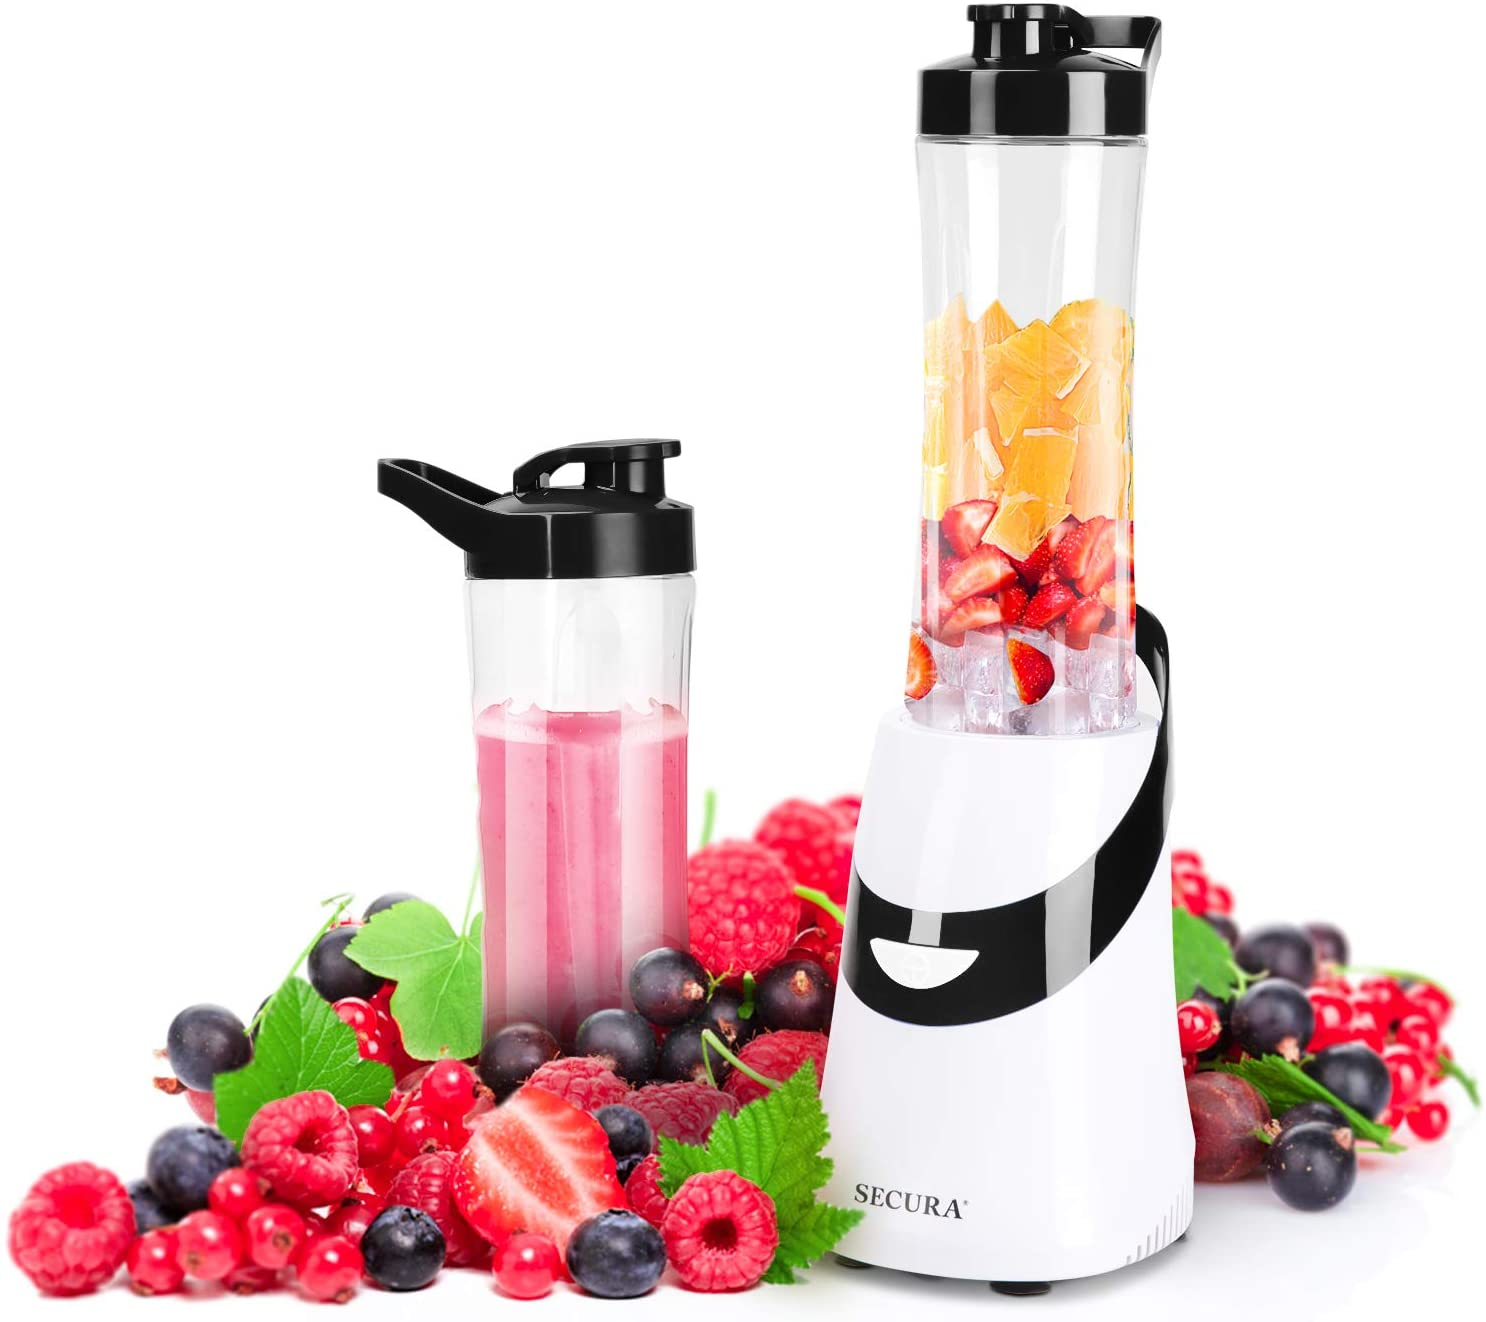 Secura Personal Blender for Shakes and Smoothies